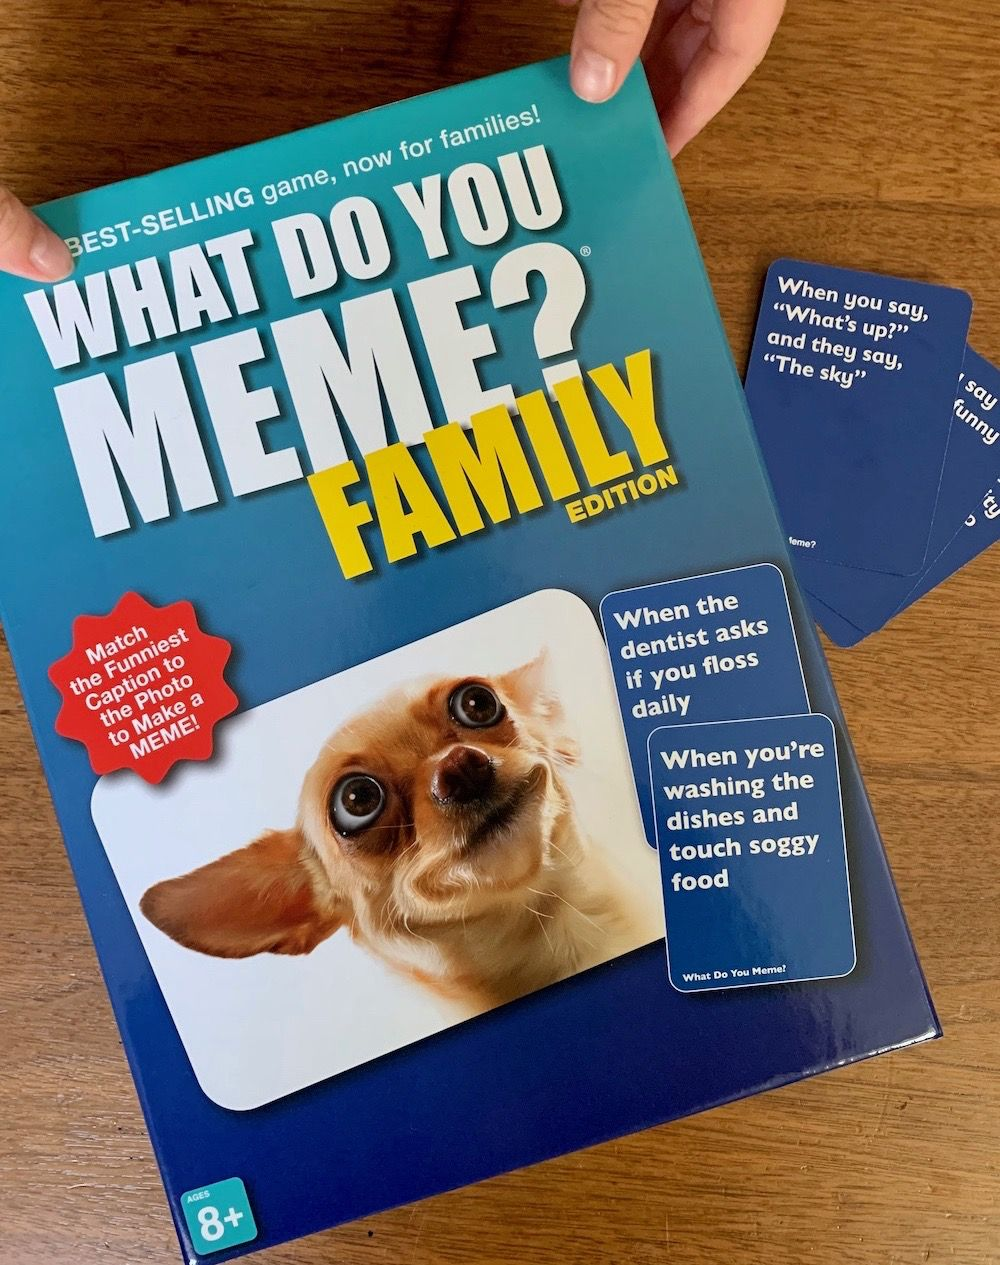 Four Ways To Entertain Yourself A Cup Of Jo What Do You Meme Family Funny Family Games